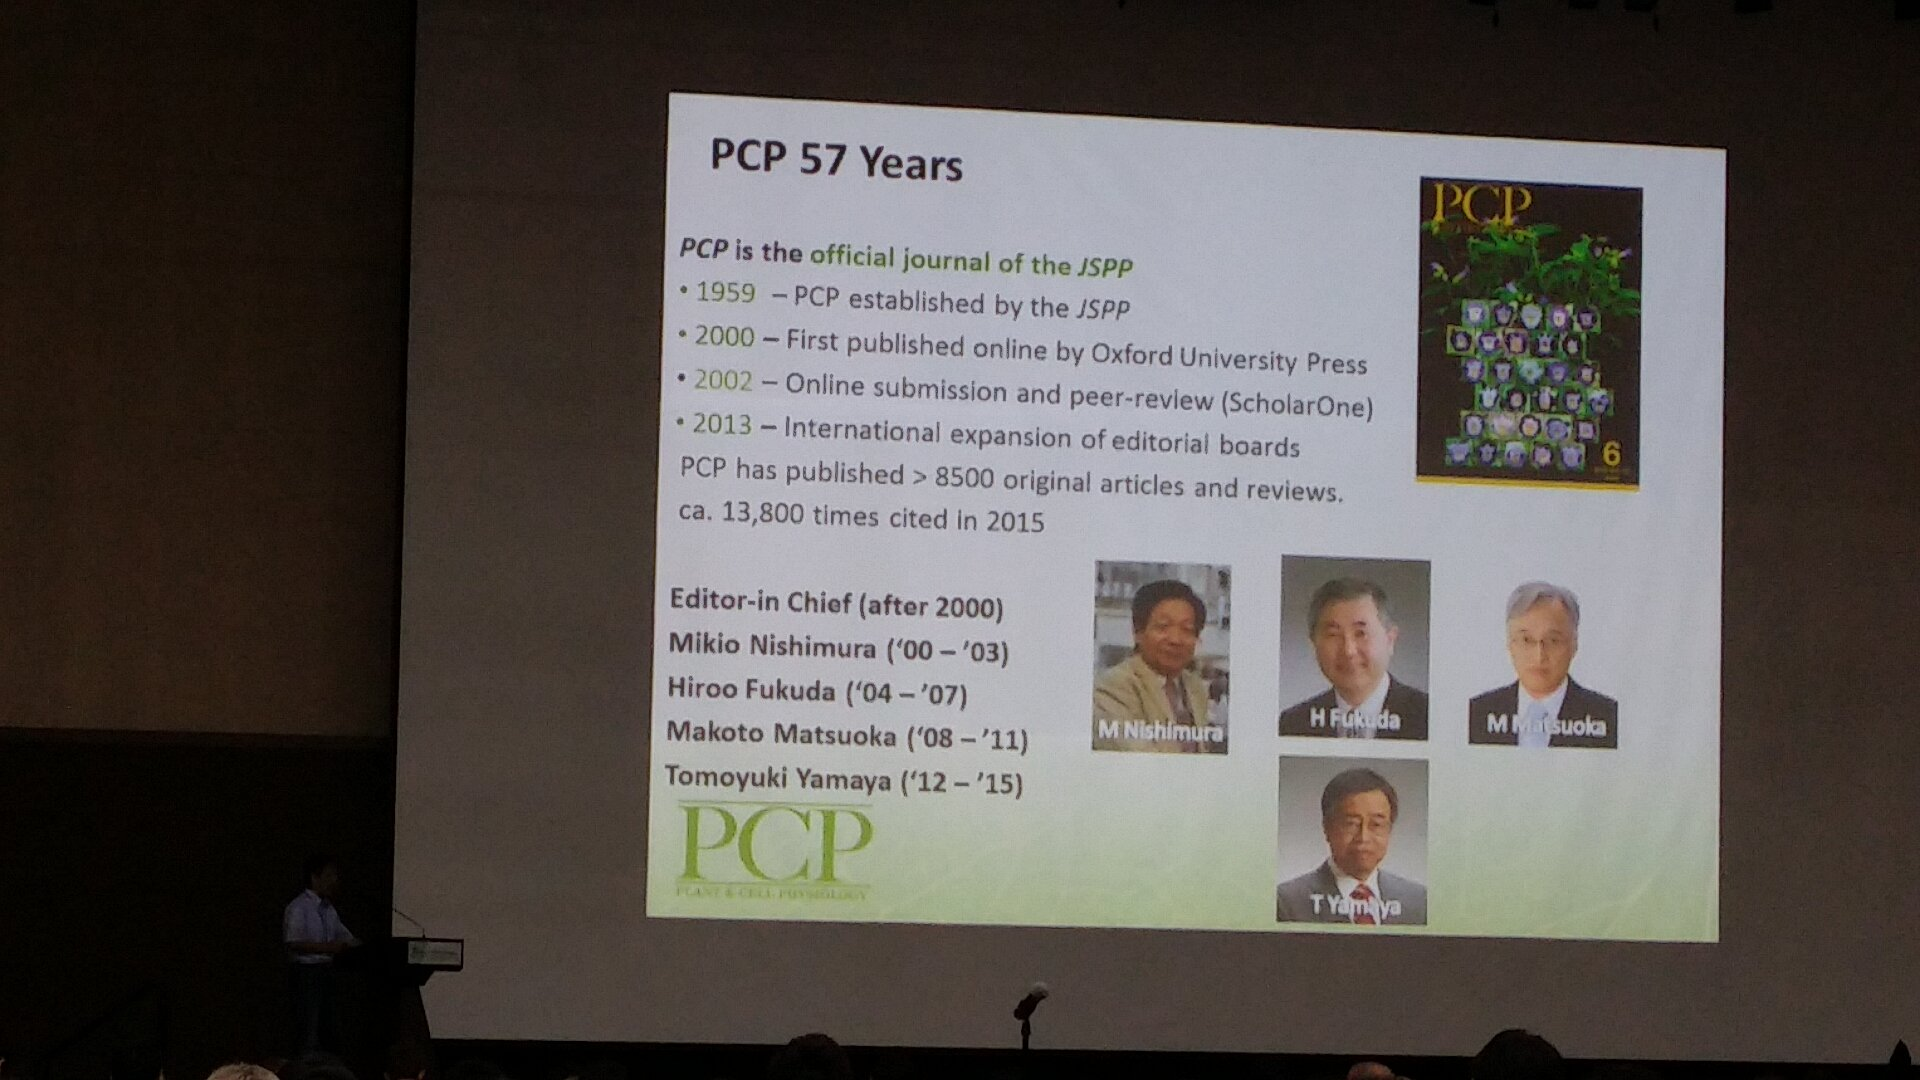 Excited! Dr. Sakakibara RIKEN CSRS at #ICAR_2016 to promote PCP Plant and Cell Physiology https://t.co/iN1tcVYD1P